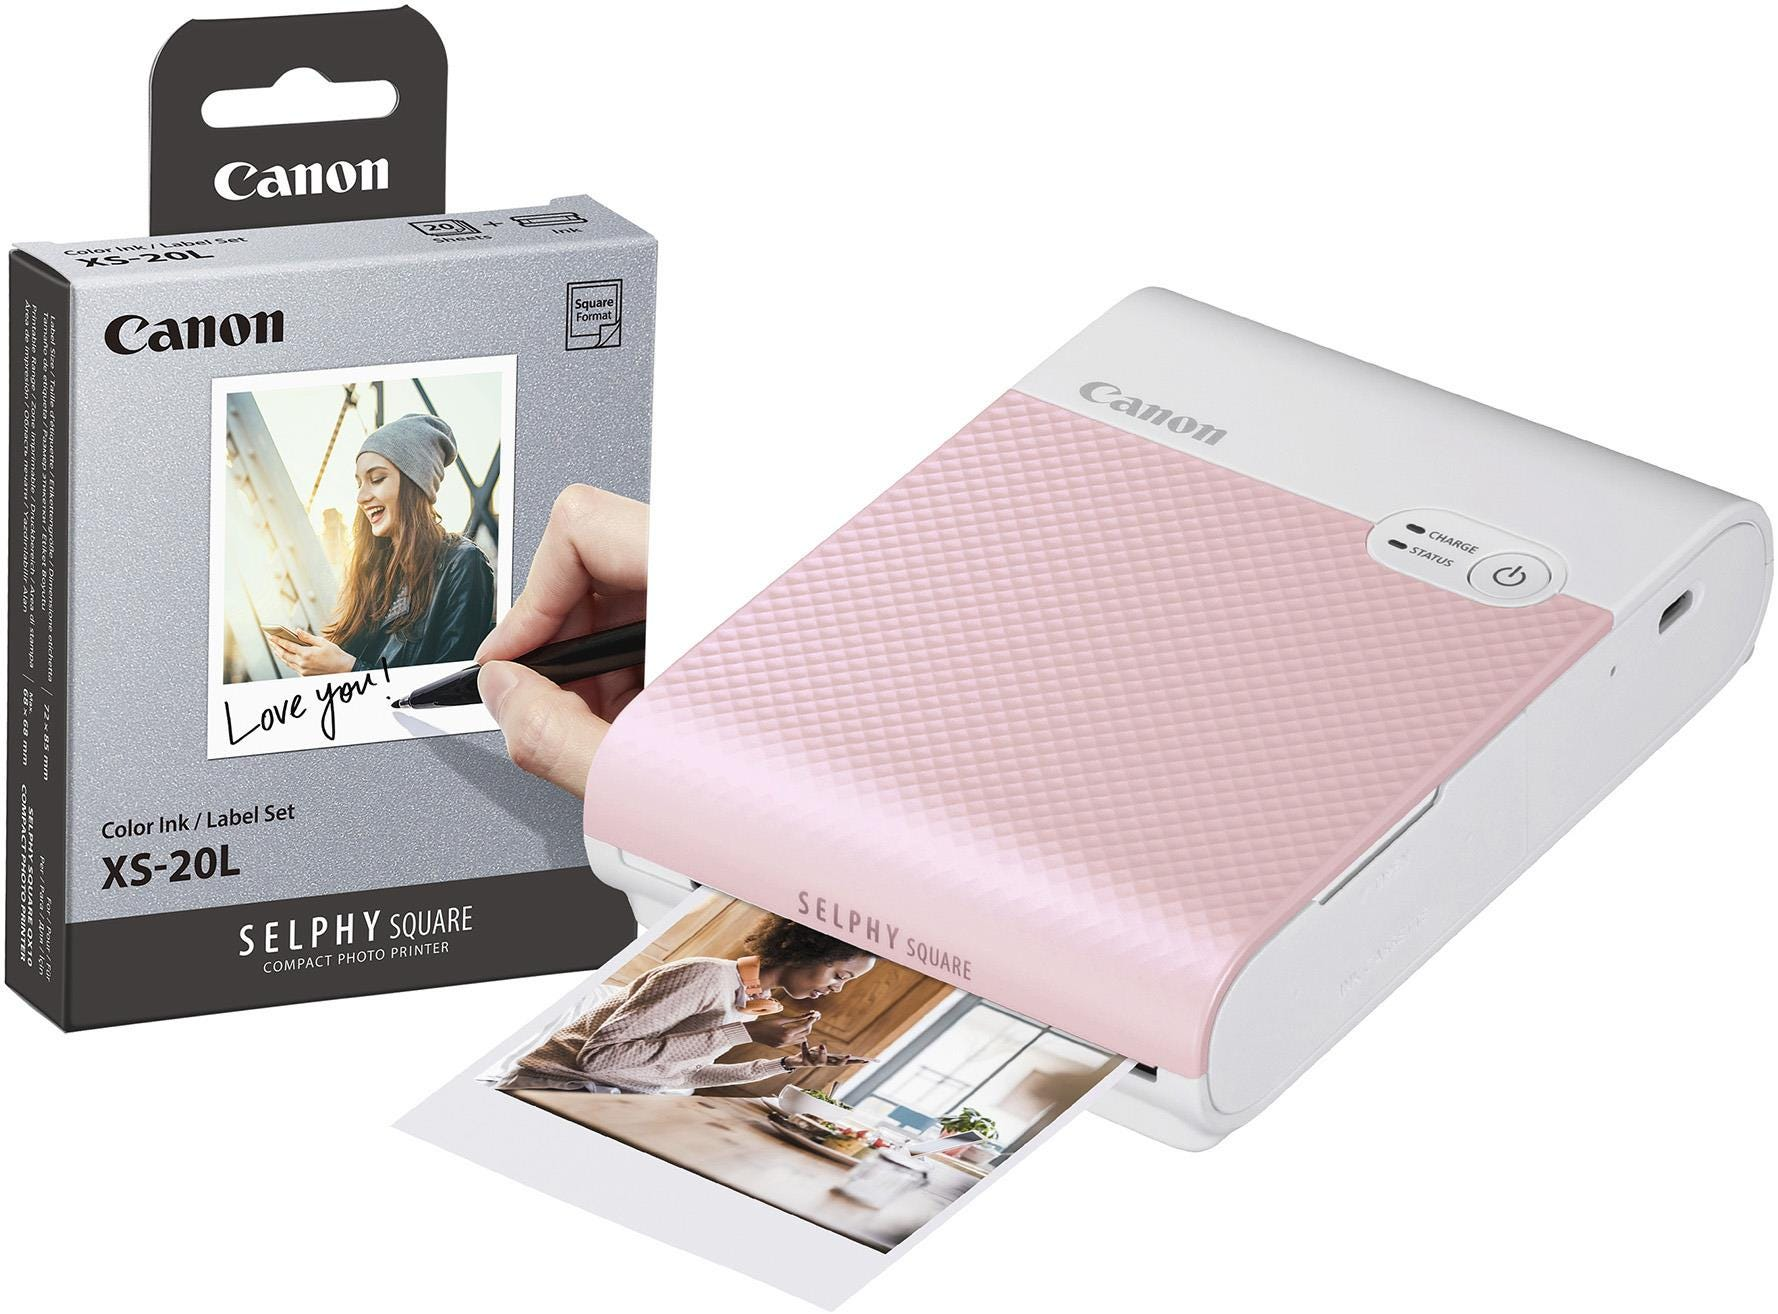 Canon Selphy Square QX10 Instant Photo Printer including 20 Shots - Pink